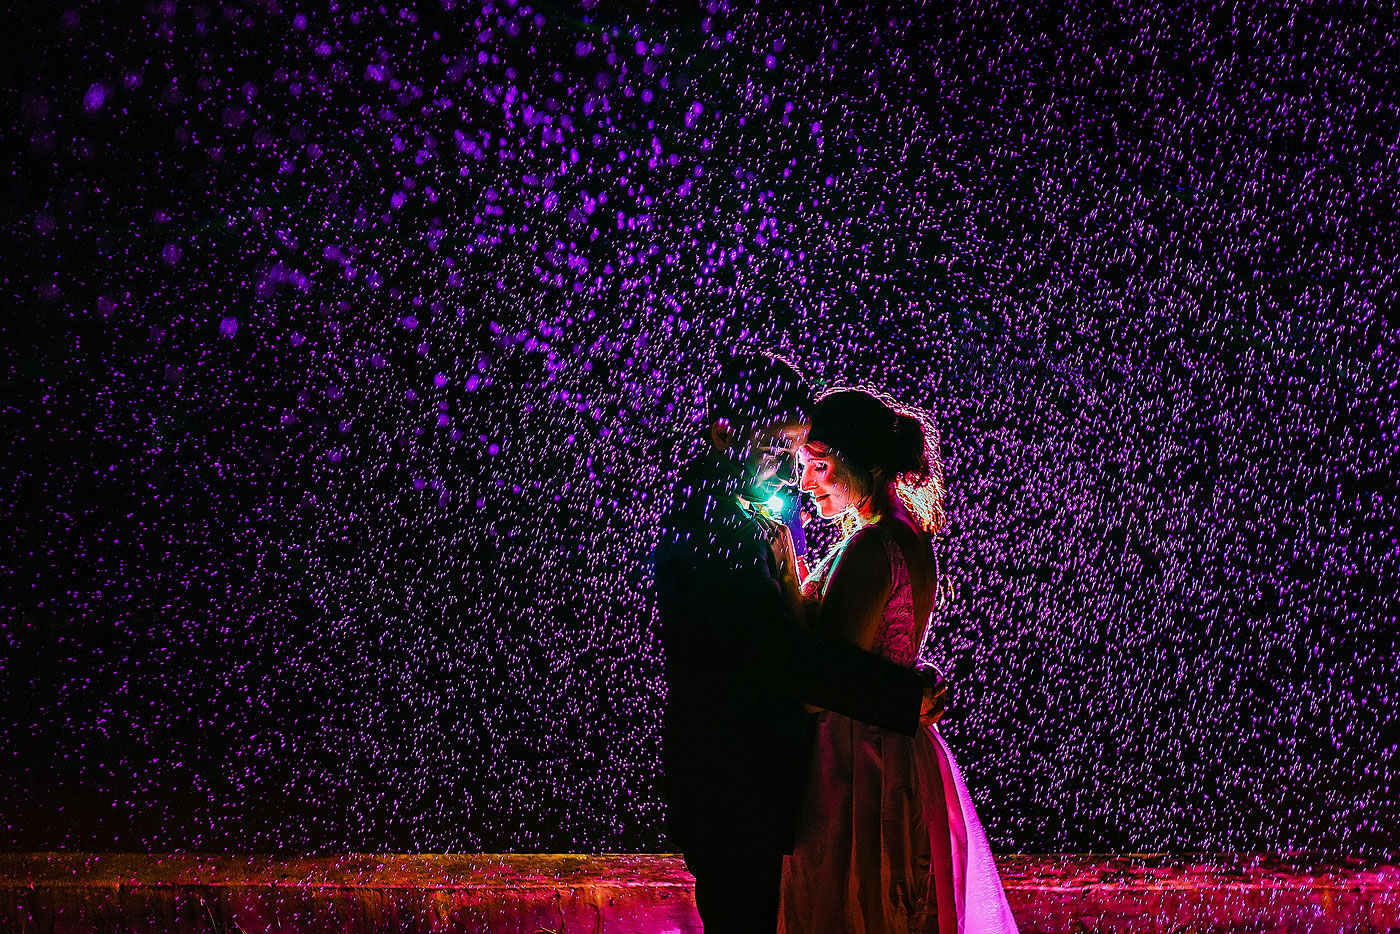 Rain Night Wedding Day Couple Photo